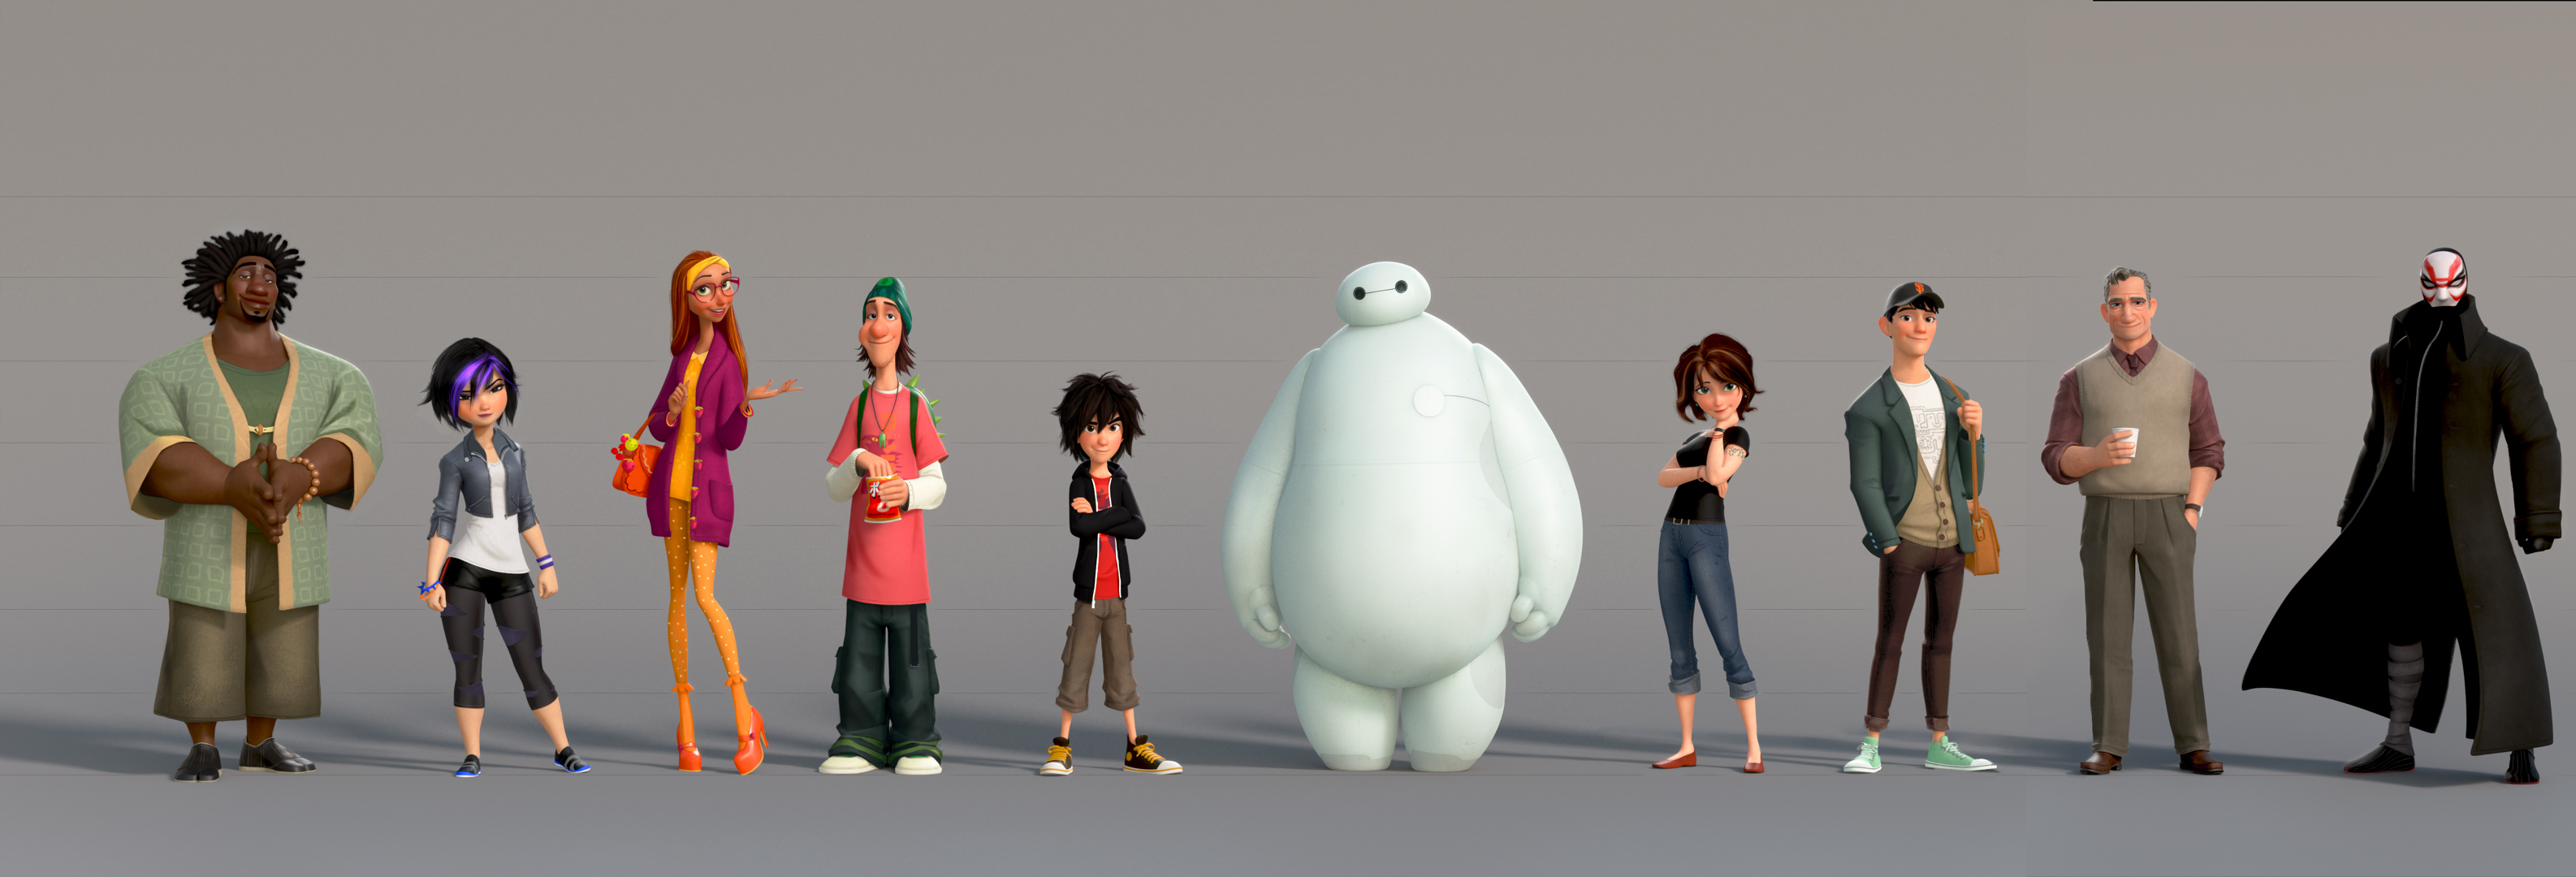 High Resolution Wallpaper | Big Hero 6 3172x1080 px